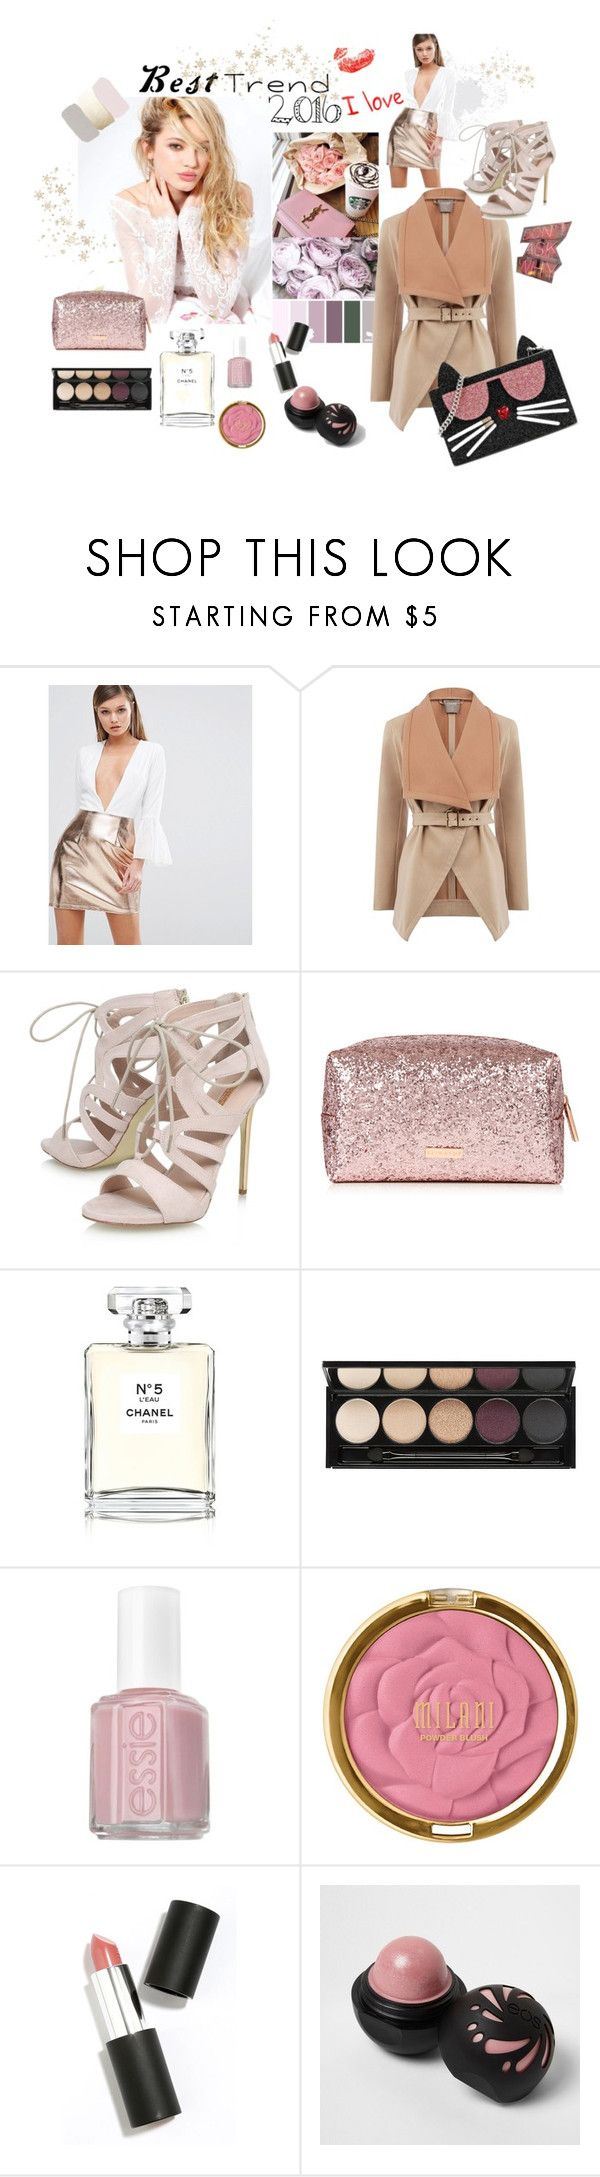 """""""Best Trend of 2016"""" by ruzi-78 ❤ liked on Polyvore featuring Silvana, Rare London, Oasis, Carvela, Chanel, Witchery, Essie, Sigma, River Island and Karl Lagerfeld"""